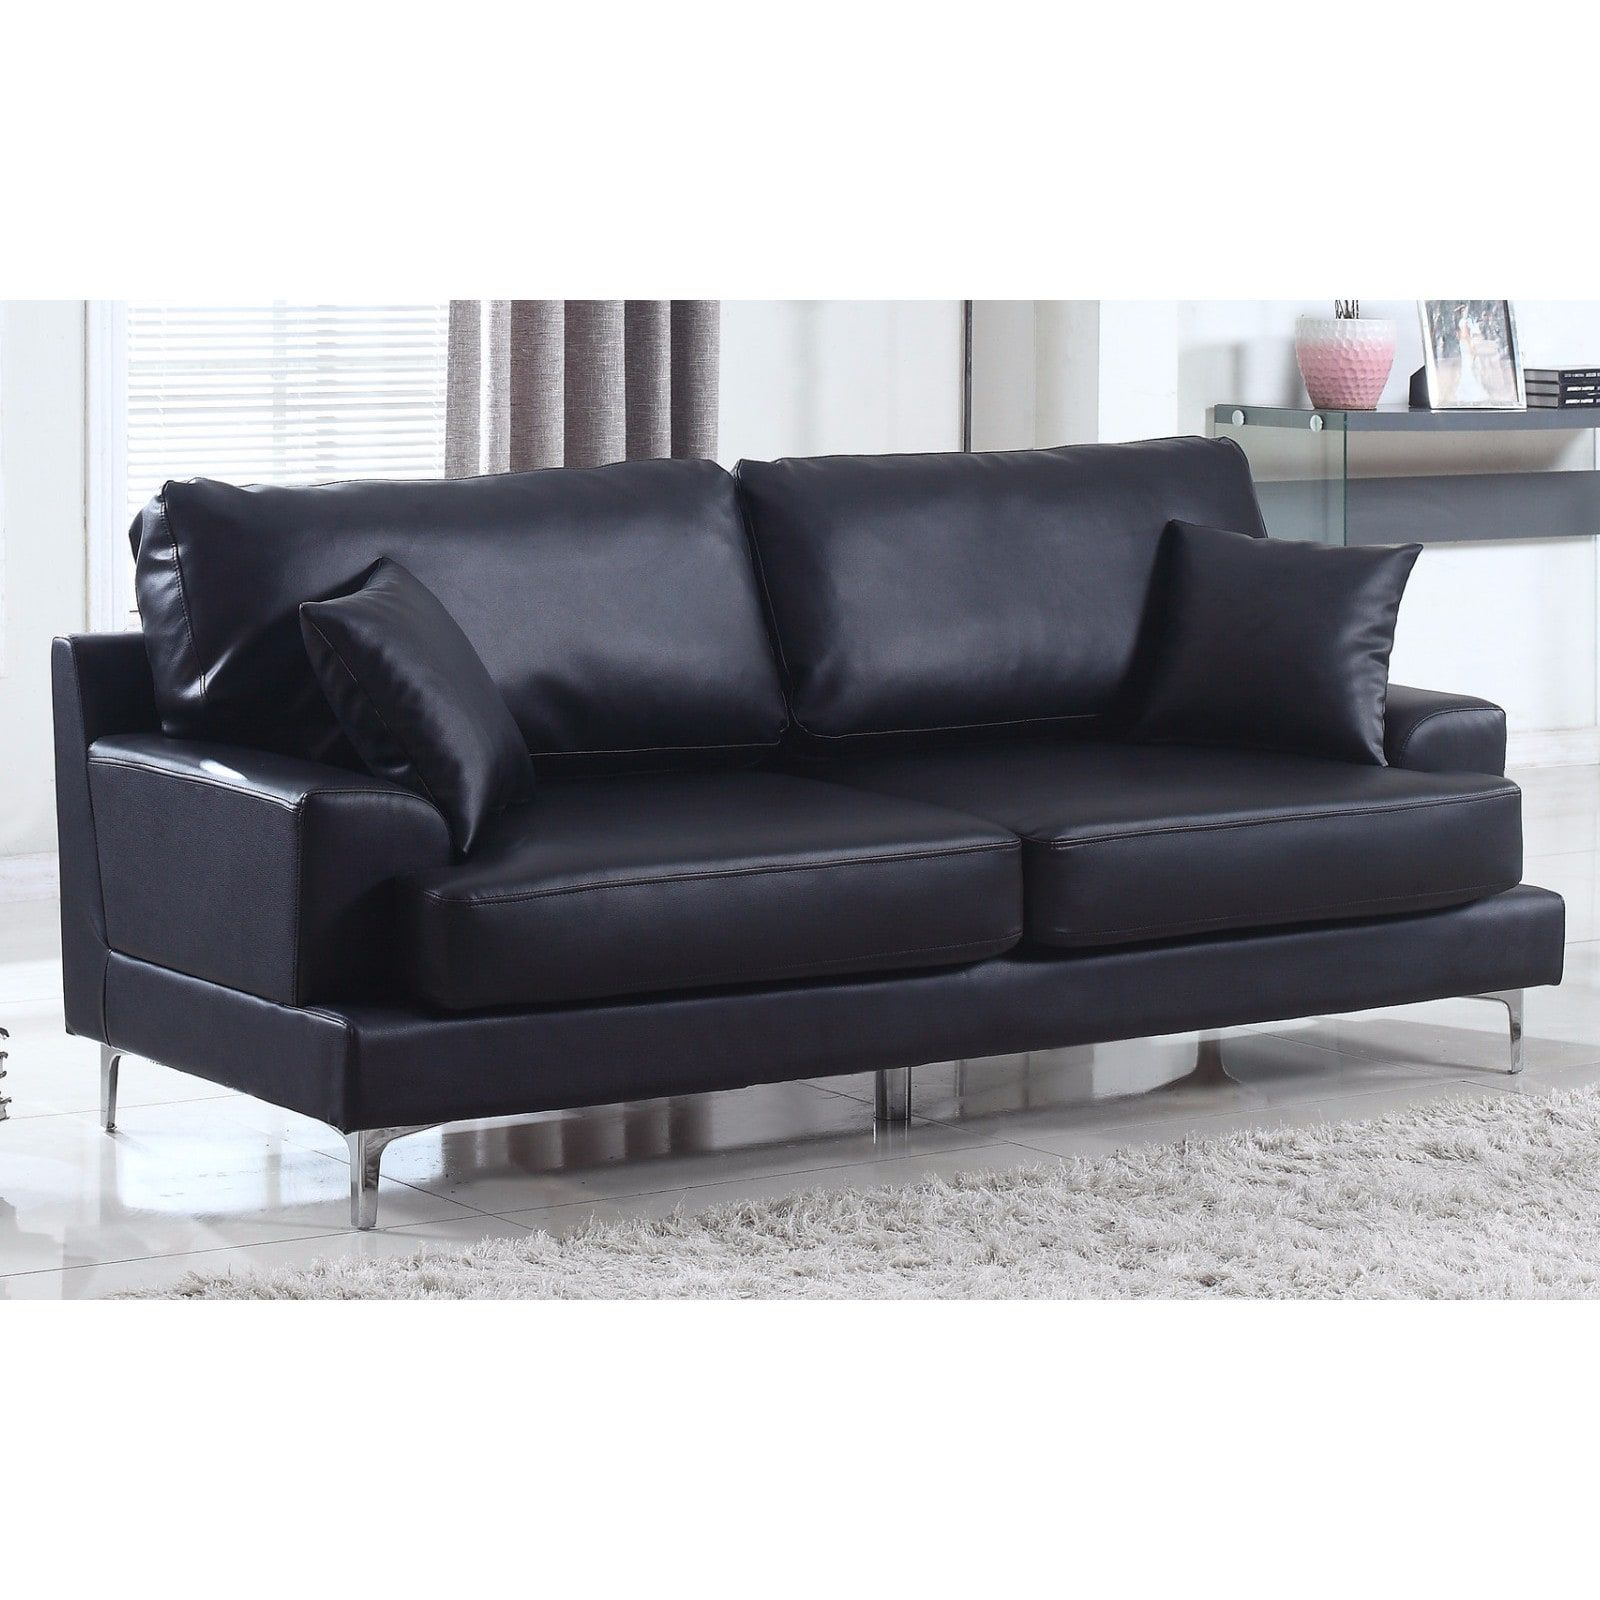 Ultra Modern Plush Bonded Leather Living Room Sofa With